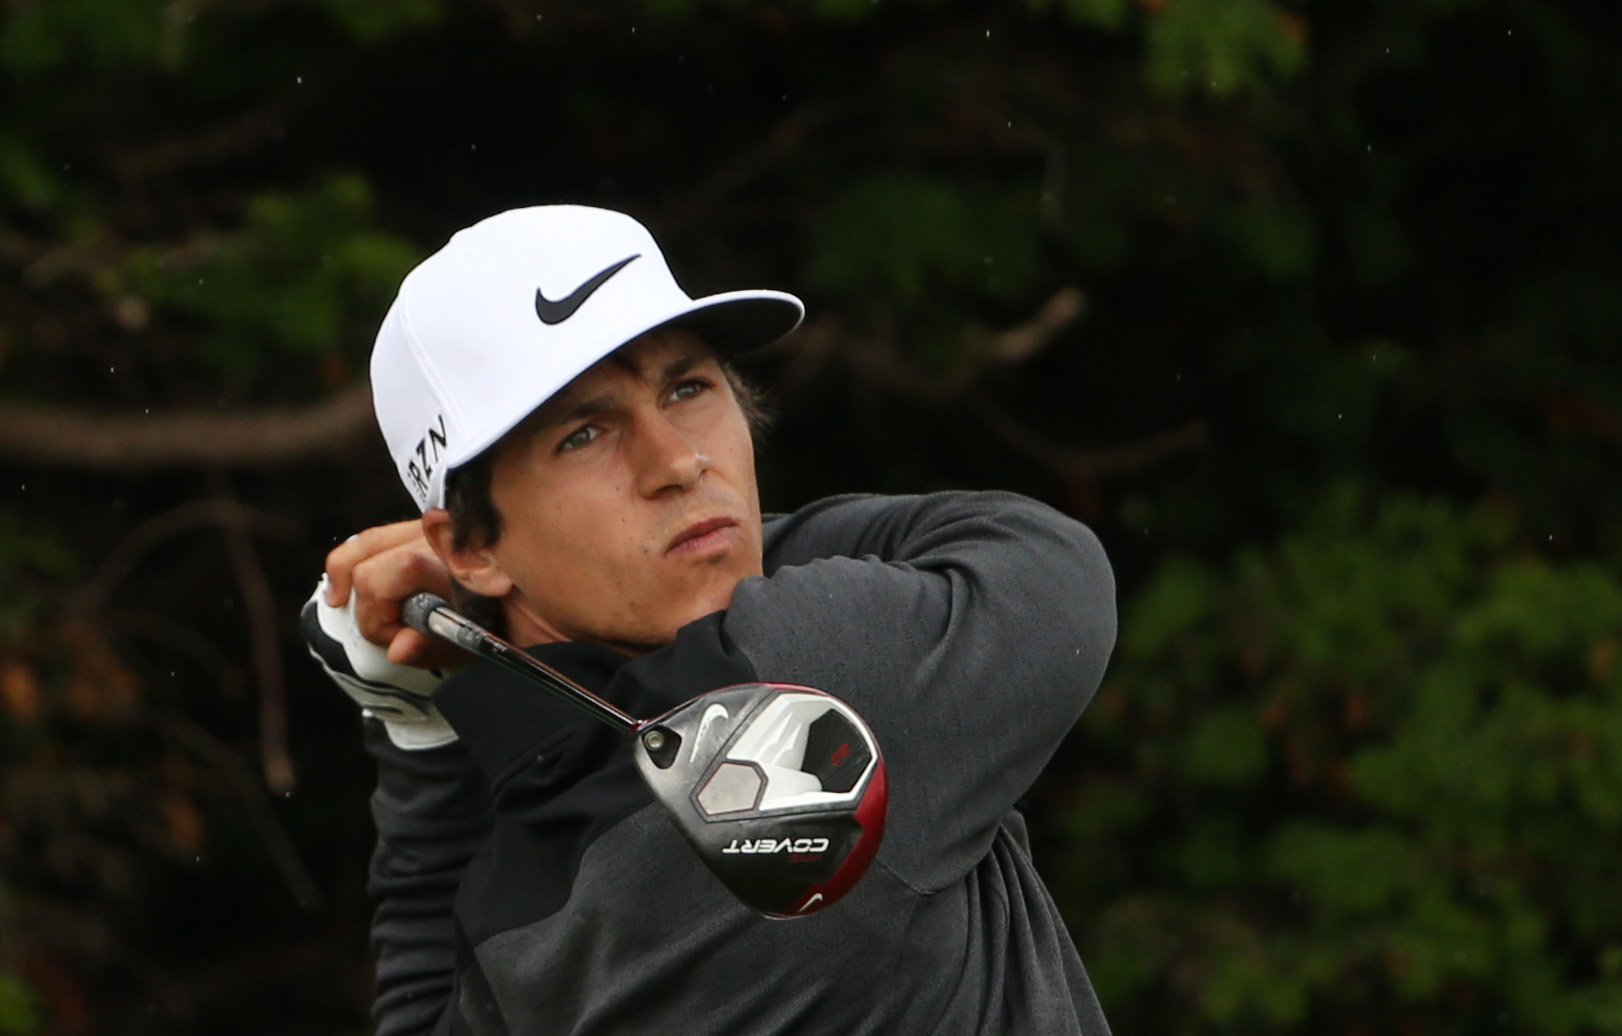 Thorbjorn Olesen of Denmark plays a shot off the 18th tee during a practice round ahead of the British Open Golf championship at the Royal Liverpool golf club, Hoylake, England, Wednesday July 16, 2014. The British Open Golf championship starts Thursday J